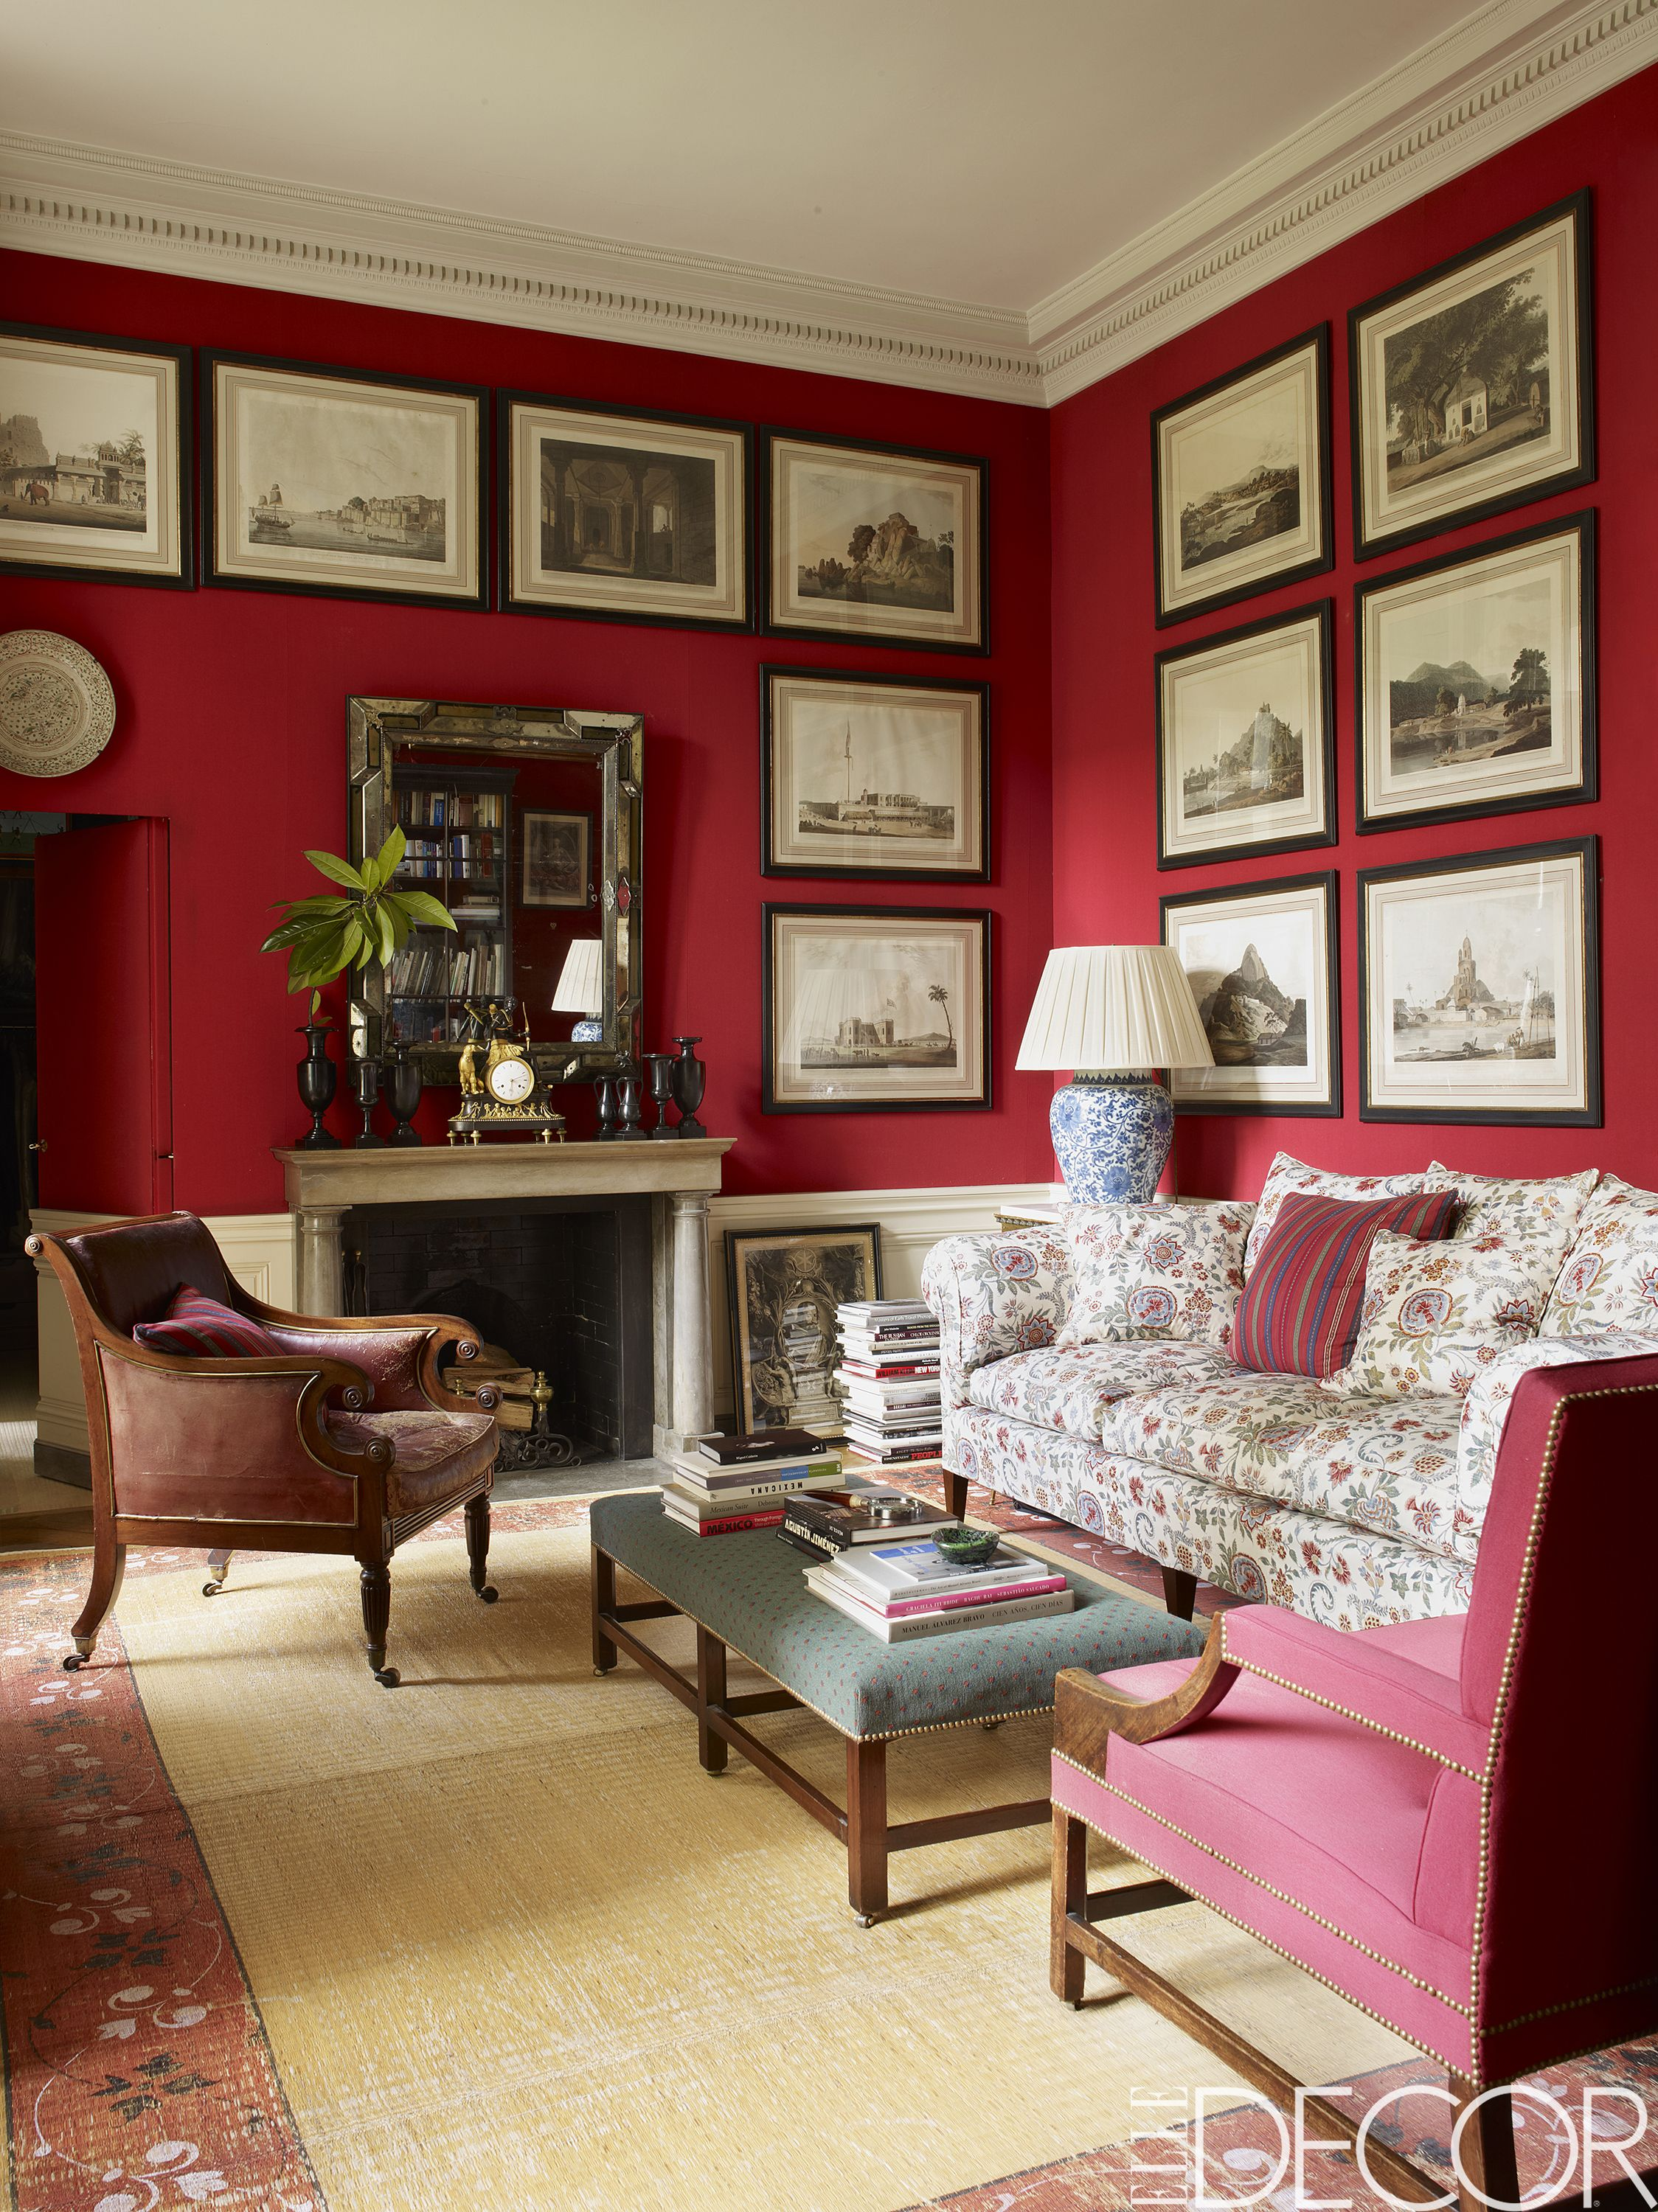 & Rooms with Red Walls - Red Bedroom and Living Room Ideas